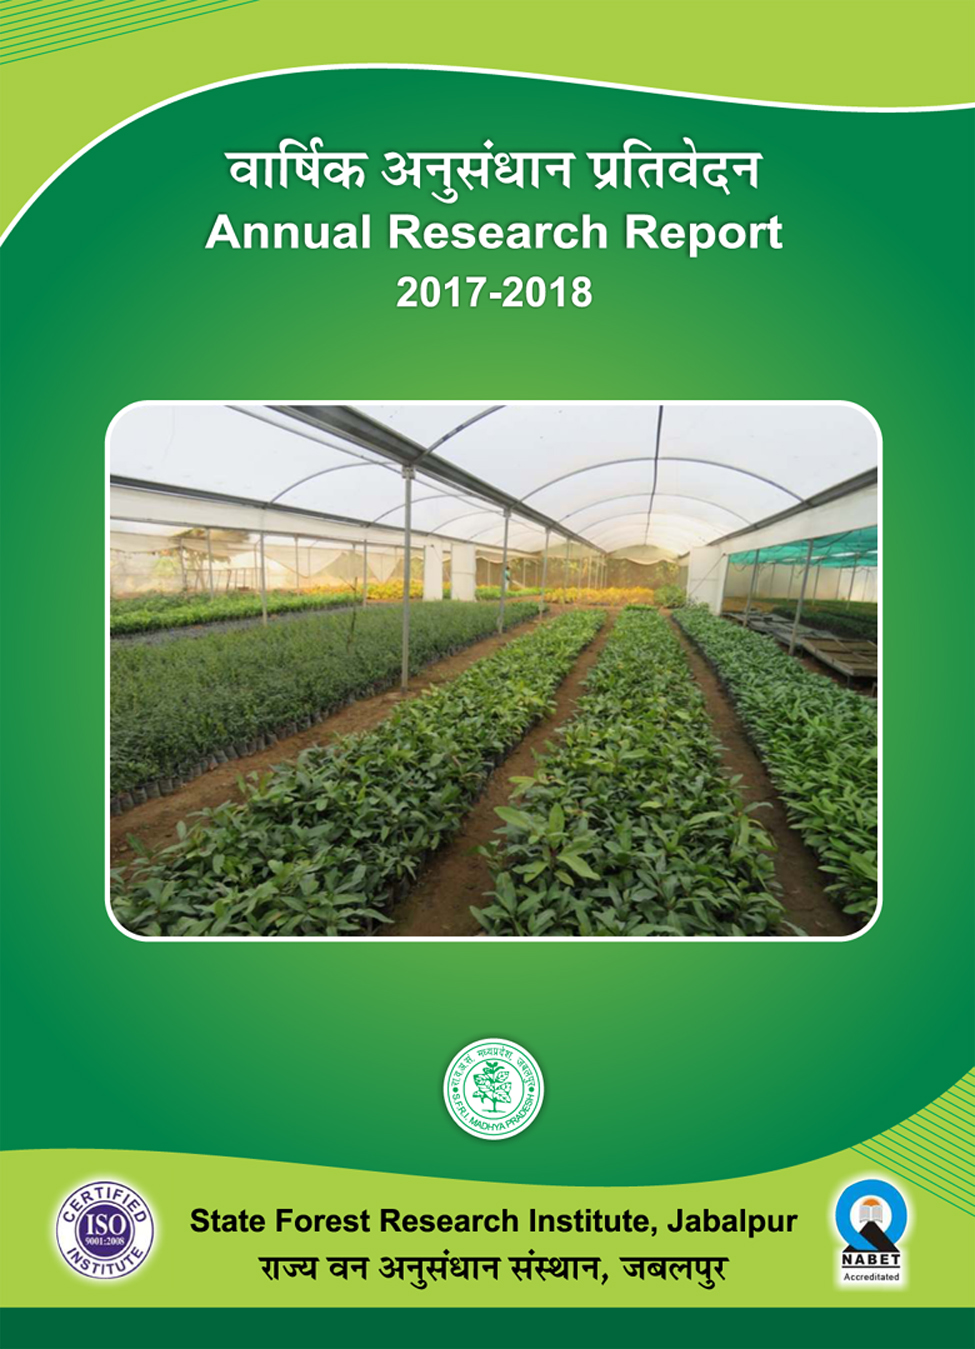 Annual Research Report 2017-2018